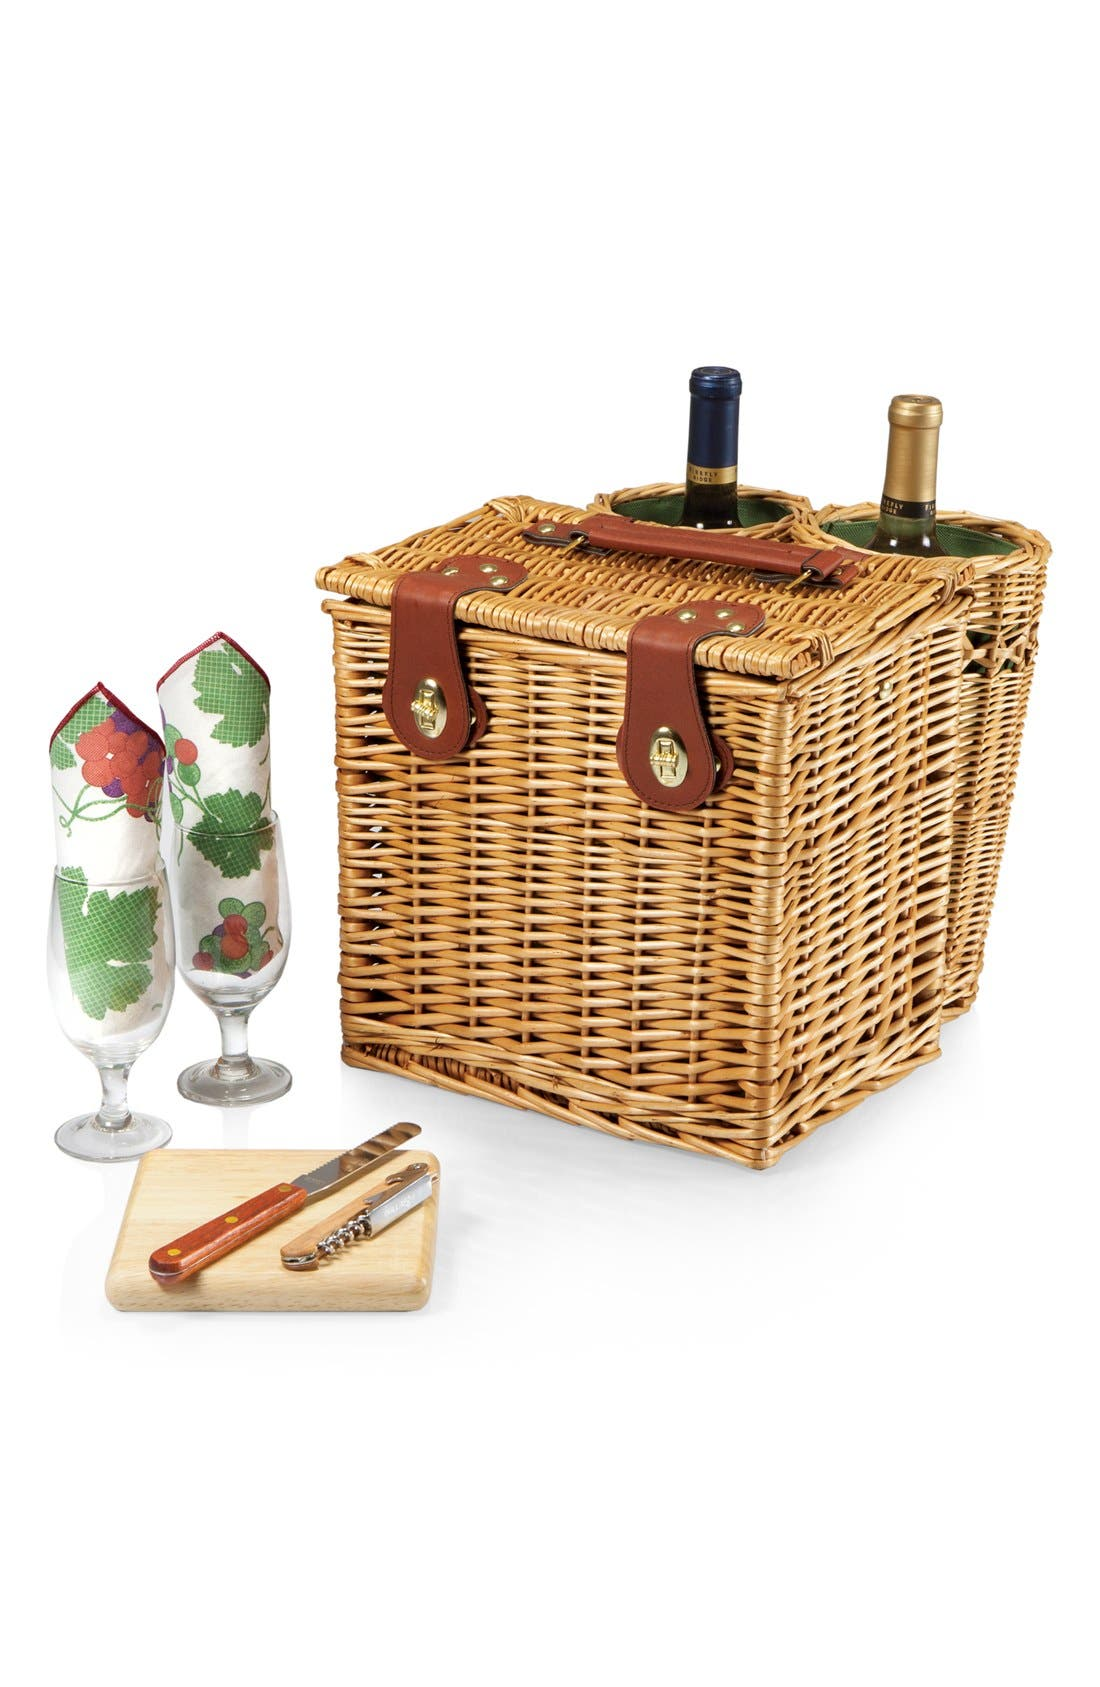 'Vino' Wine & Cheese Picnic Basket,                             Alternate thumbnail 4, color,                             Green